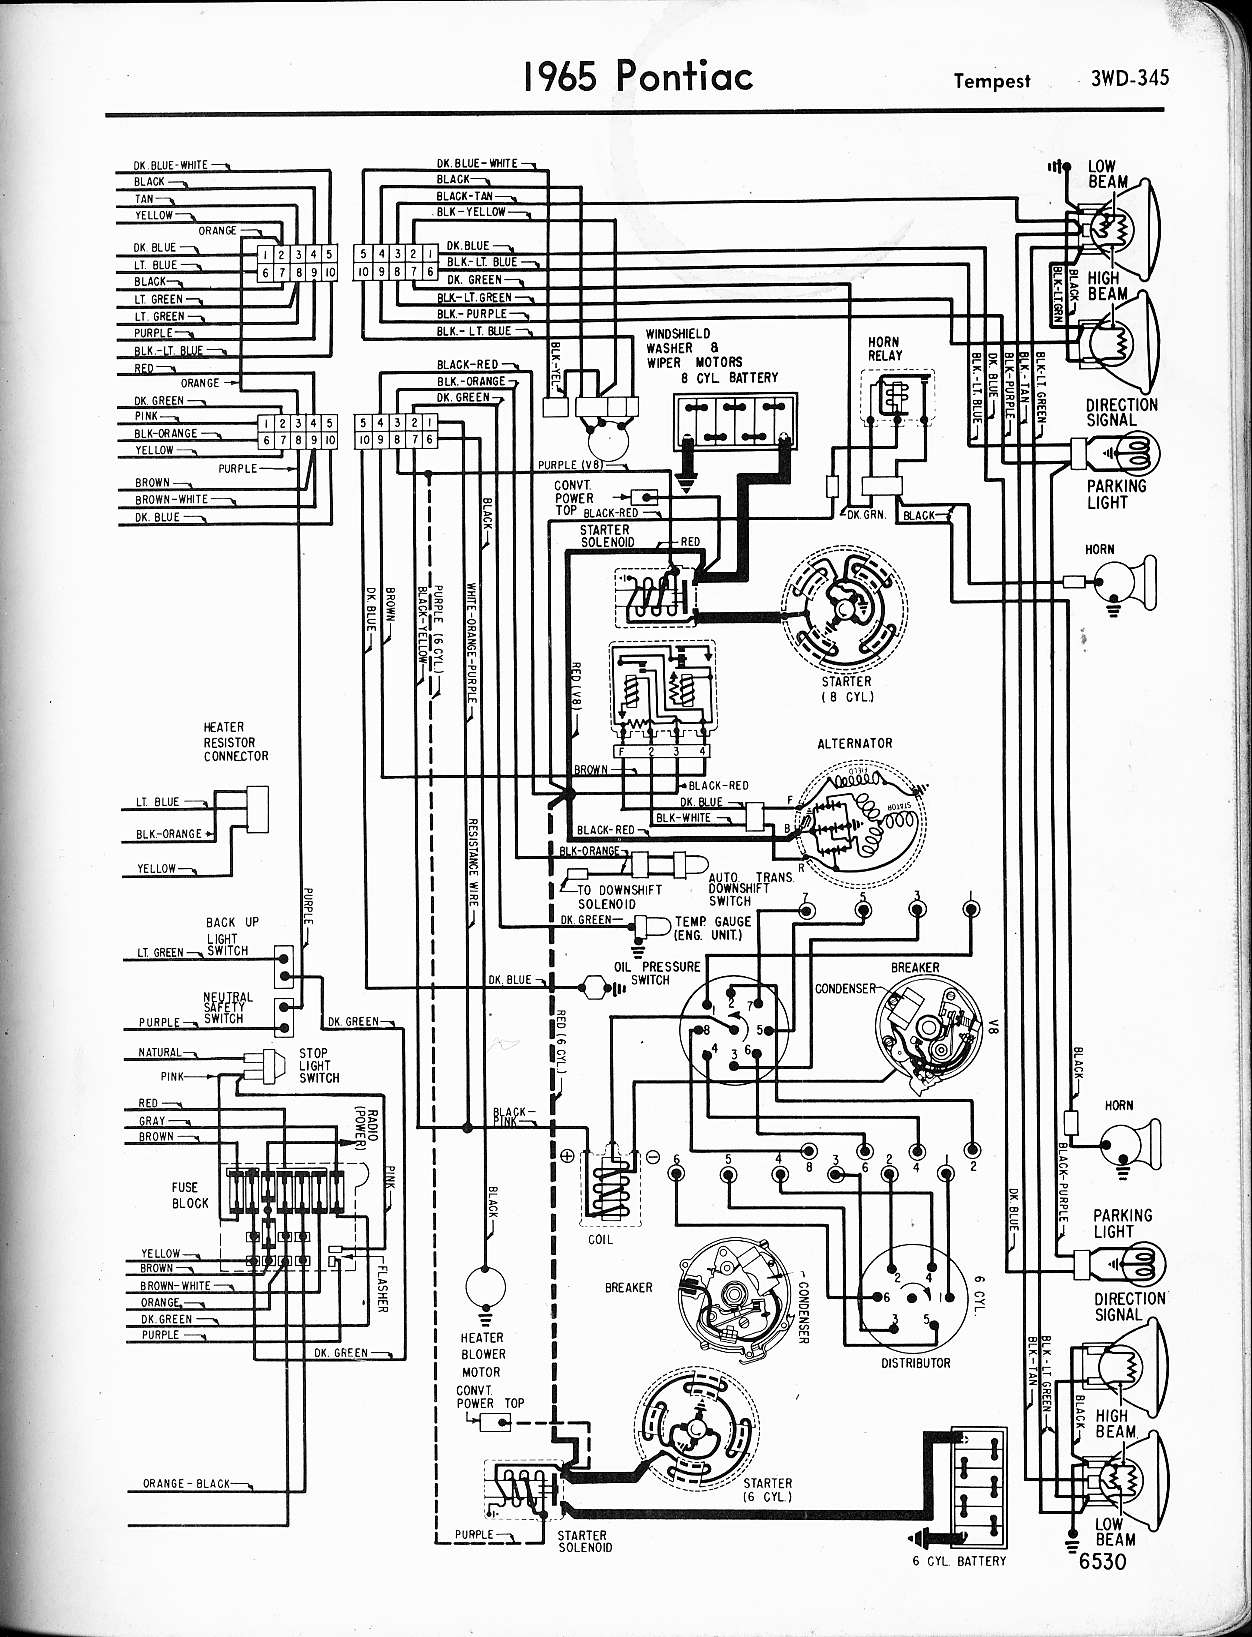 1965 Pontiac Le Mans Wiring Heater Content Resource Of 1970 Schematic 72 Lemans Diagram Detailed Schematics Rh Mrskindsclass Com 1967